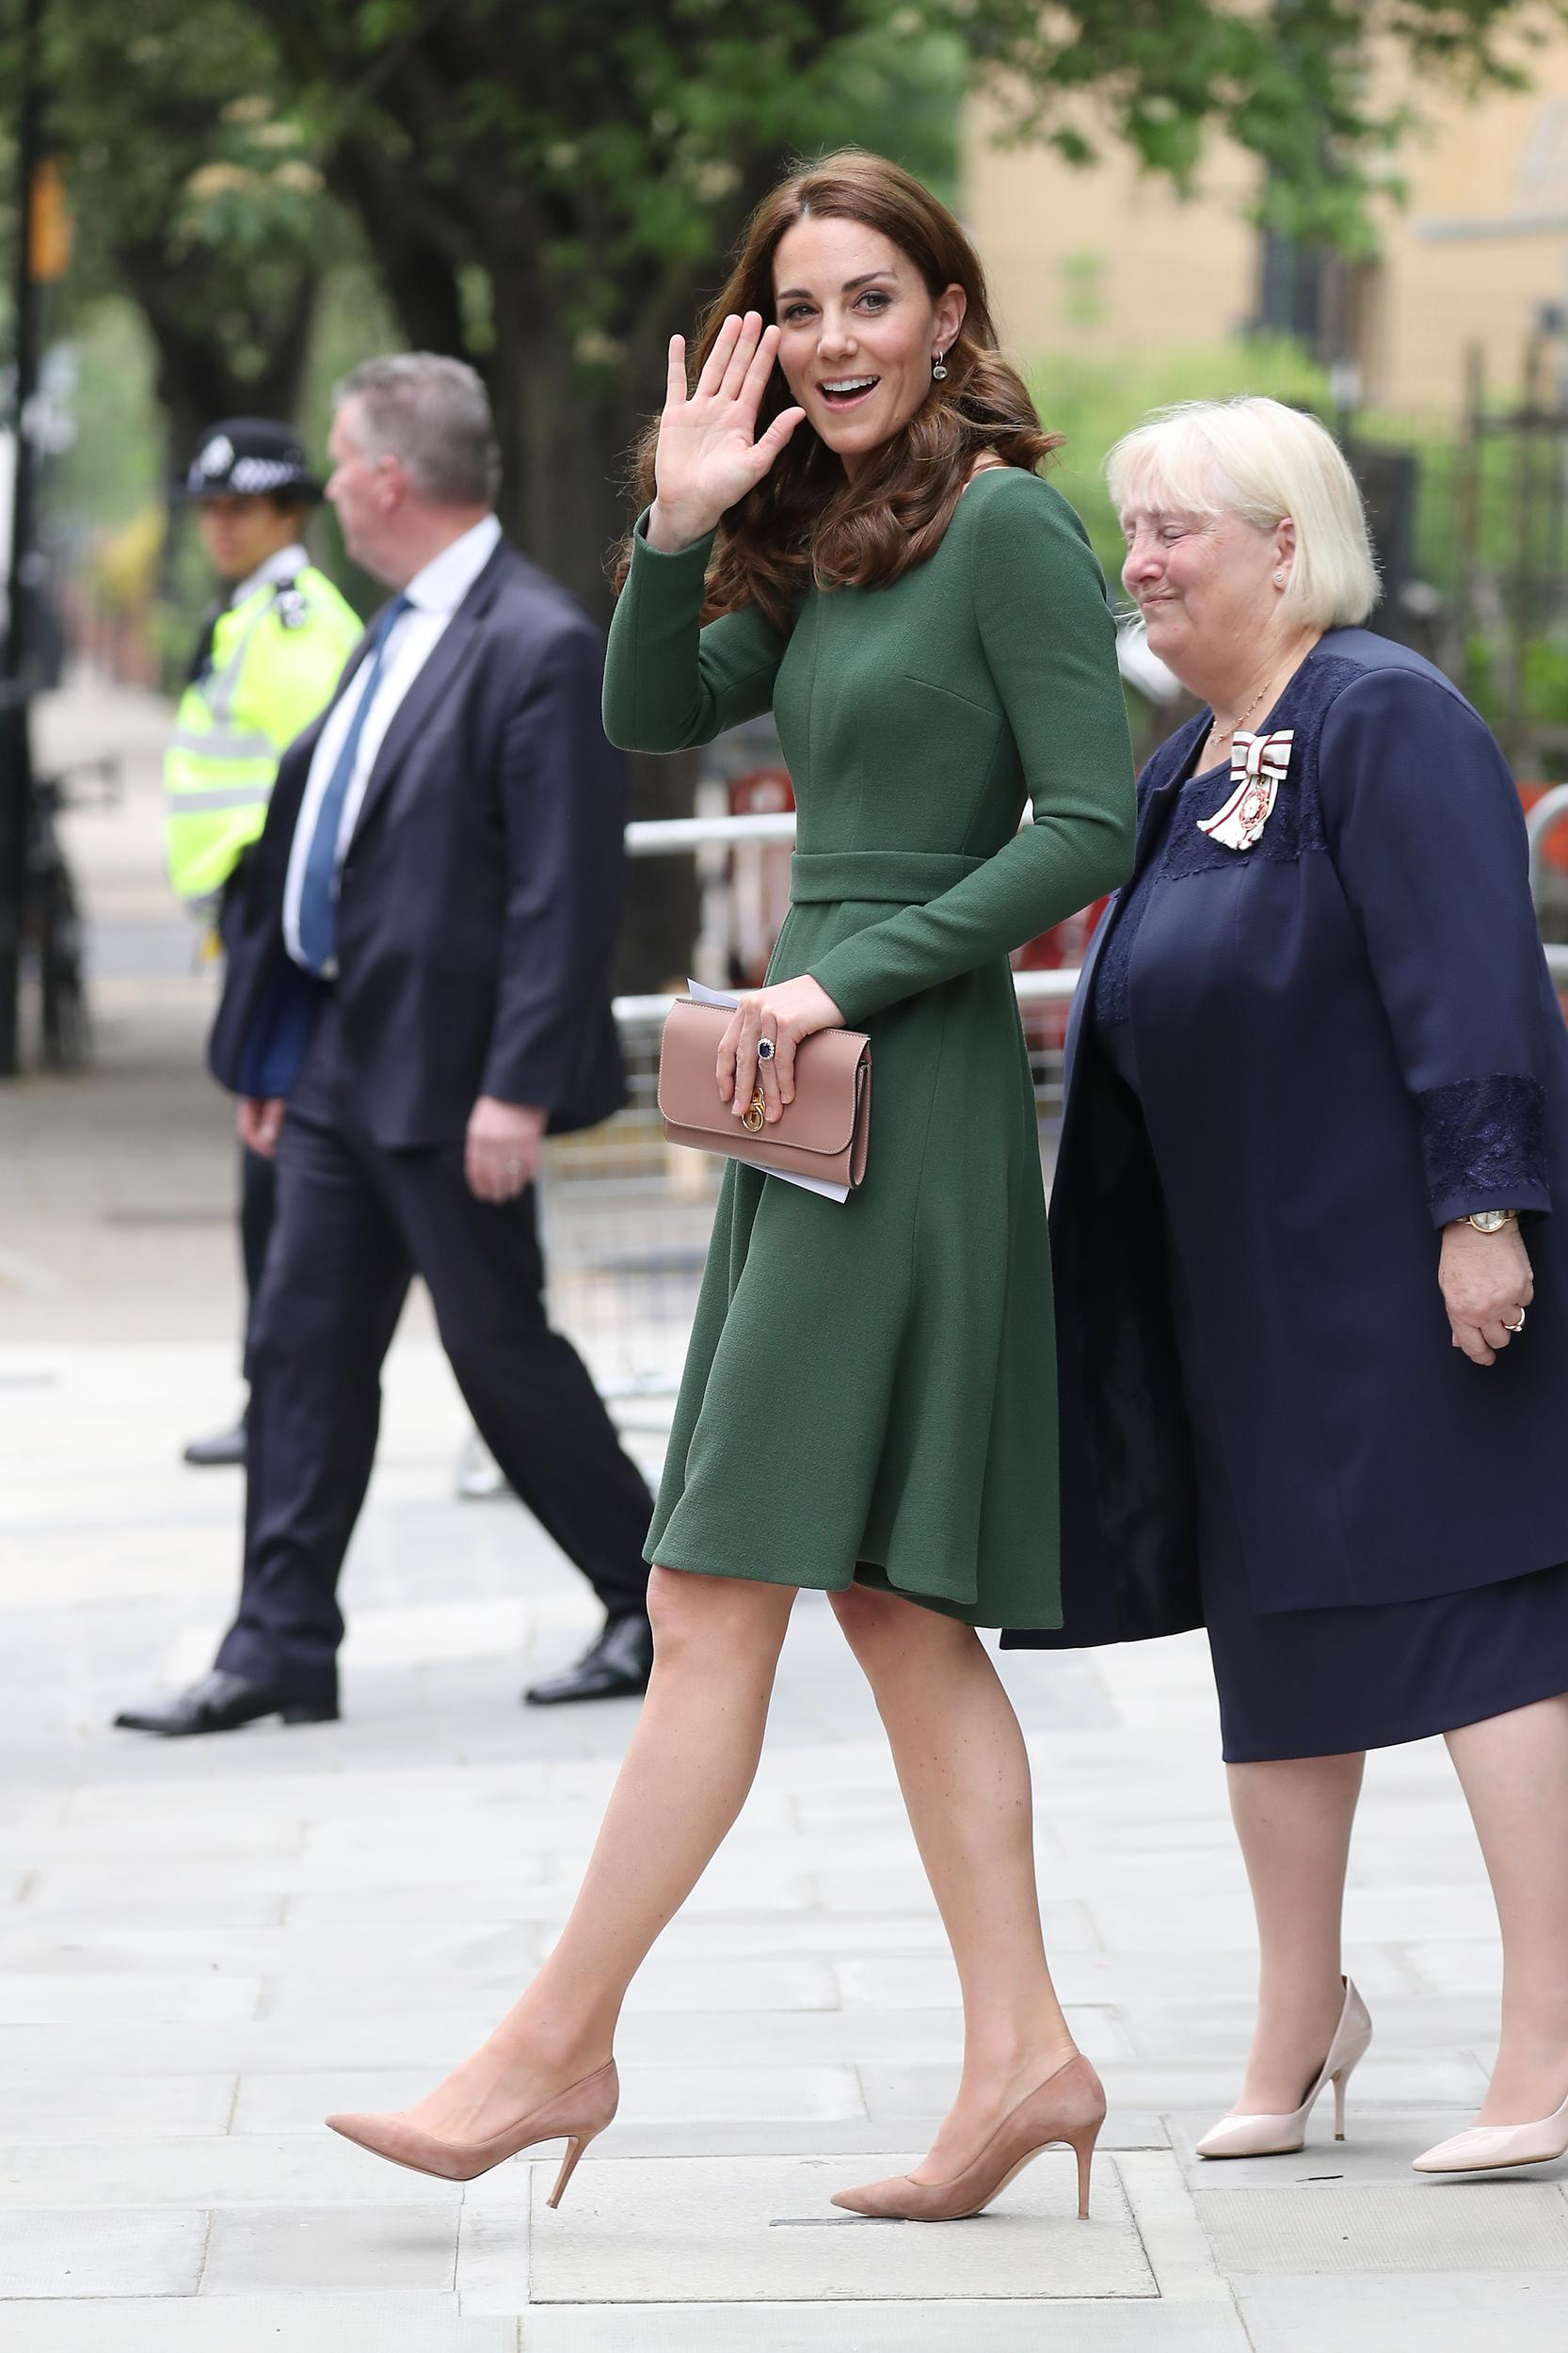 LONDON, ENGLAND - MAY 01:  Catherine, Duchess of Cambridge leaves after opening the Anna Freud Centre of Excellence at Anna Freud Centre on May 01, 2019 in London, England. The Duchess of Cambridge is Patron of the Anna Freud National Centre for Children and Families. (Photo by Neil Mockford/GC Images)